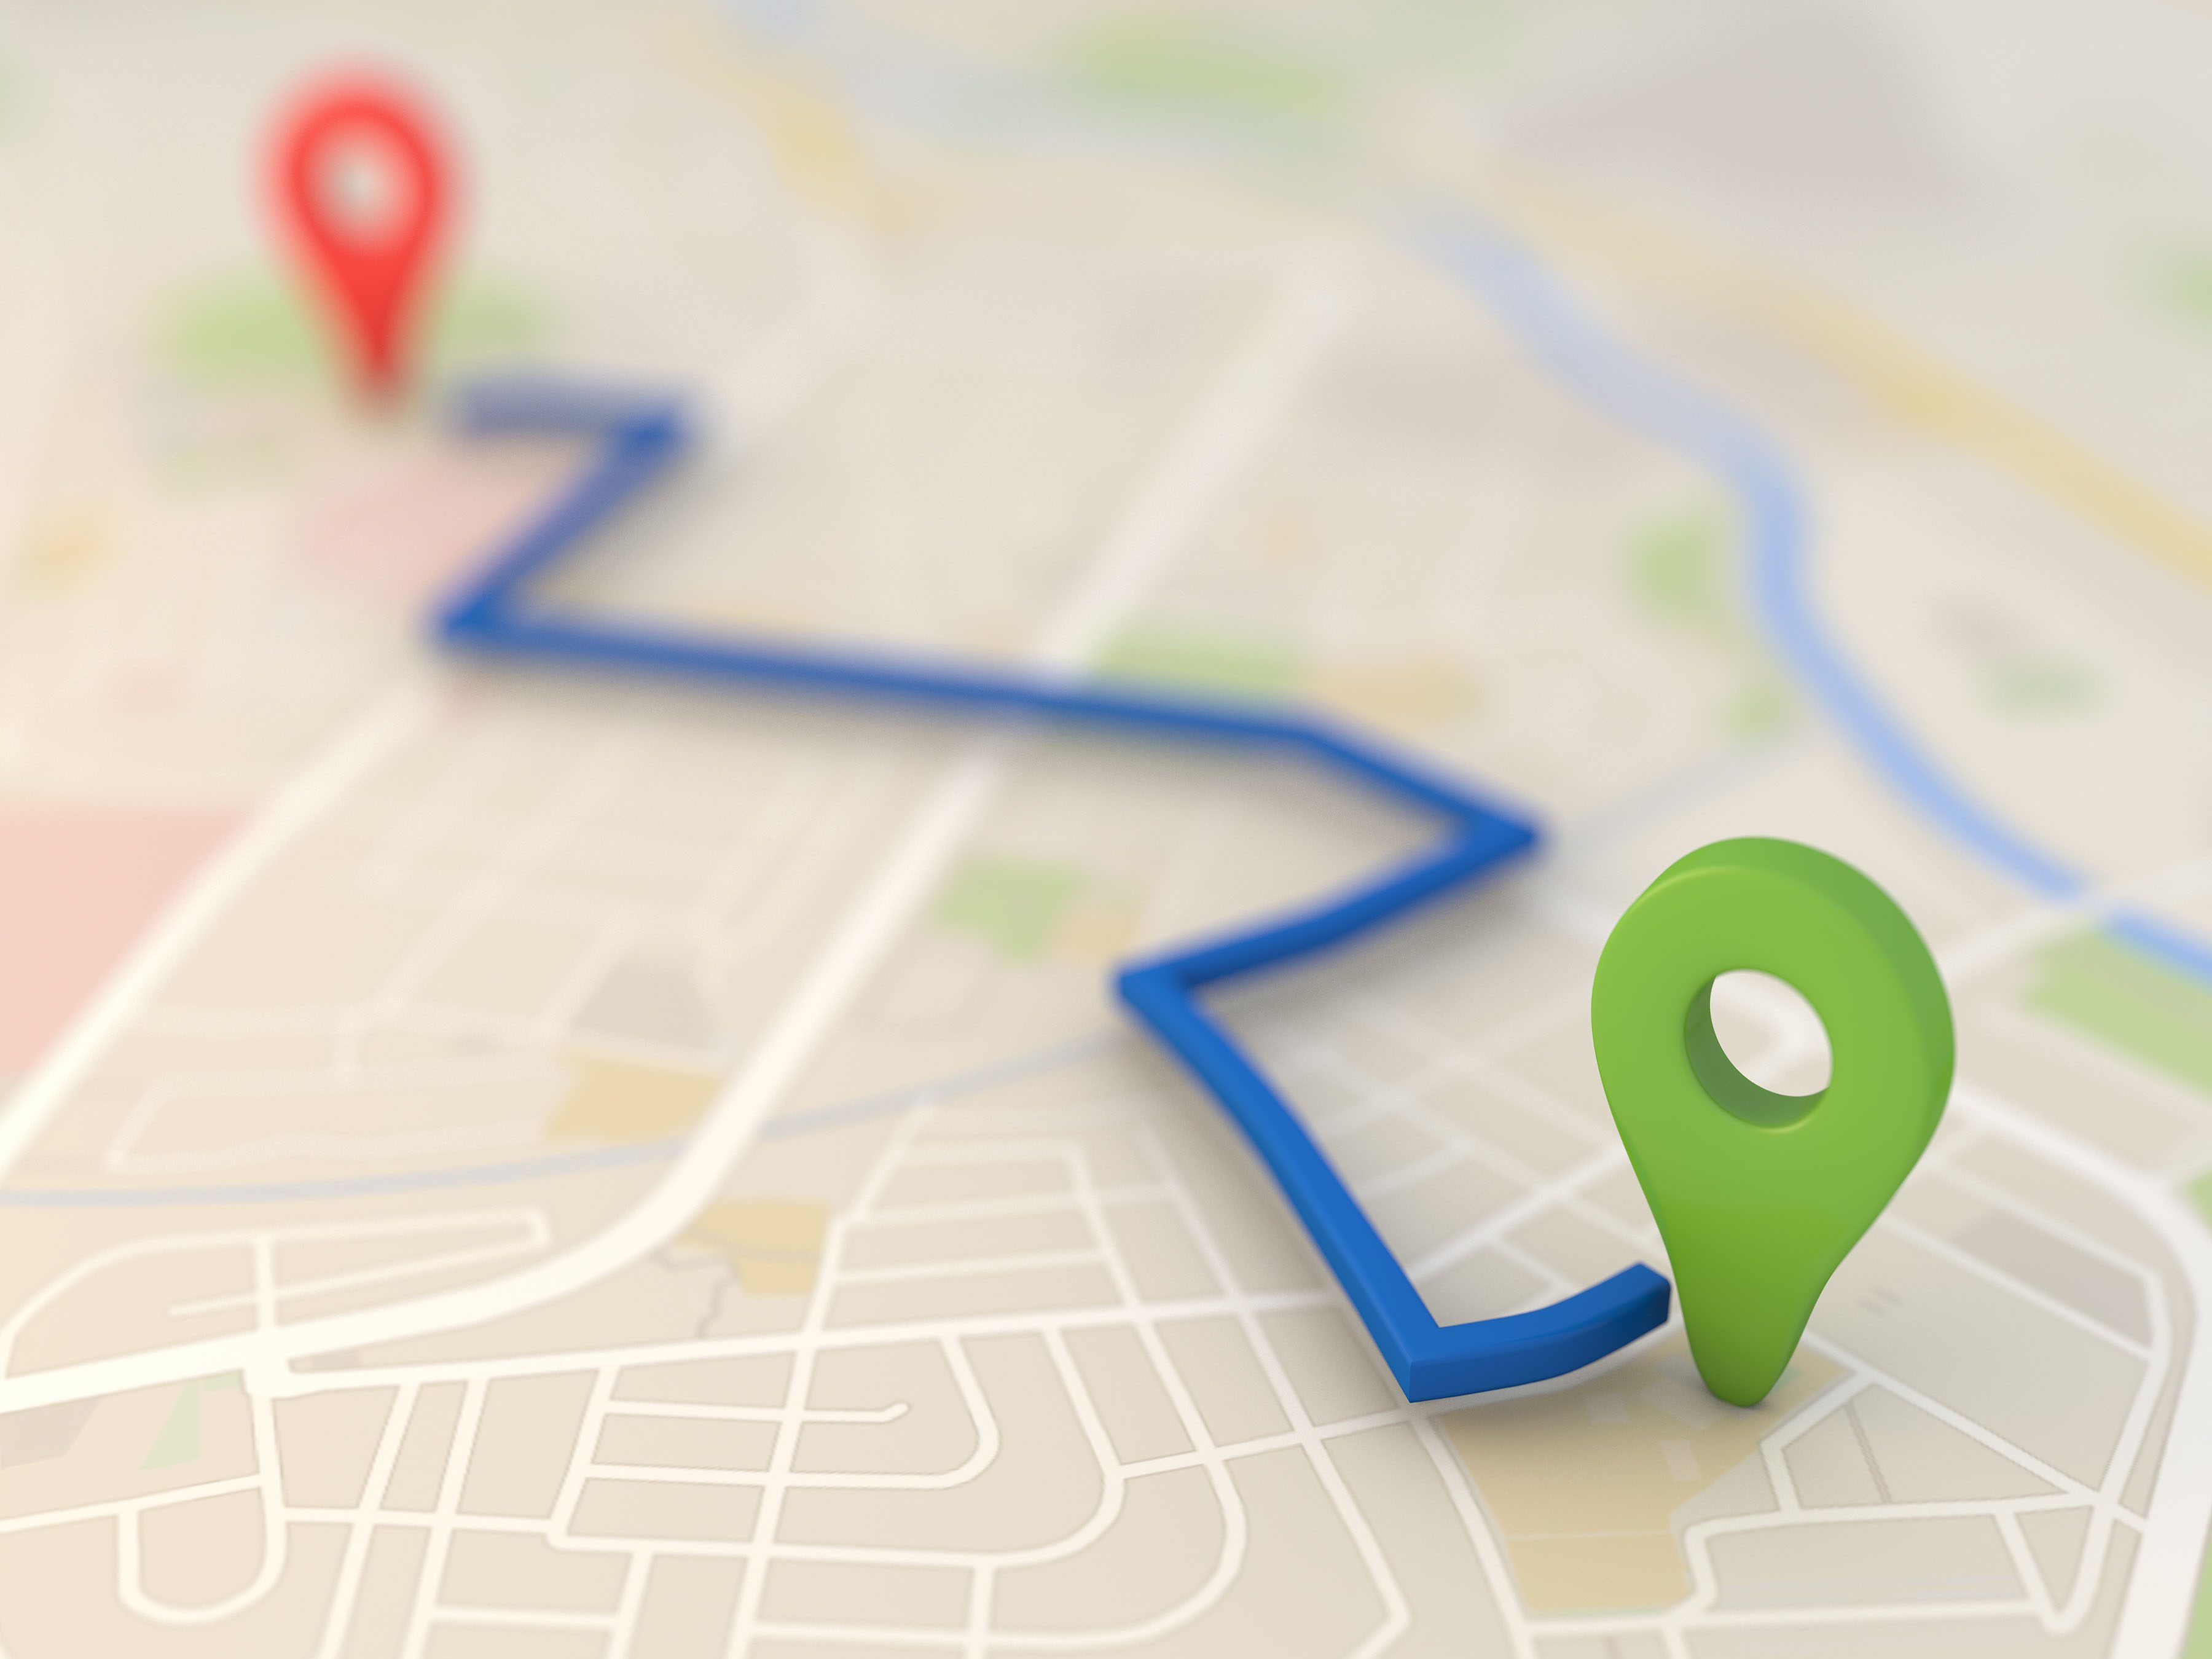 2. Set Your Starting Point, Destination and Route